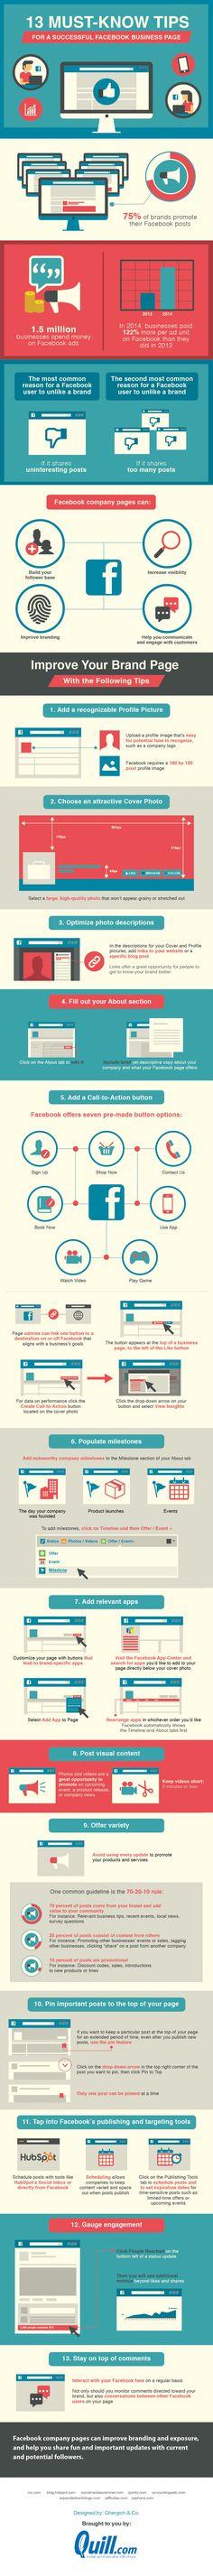 13 Must-Know Tips For a Successful Facebook Business Page Infographic